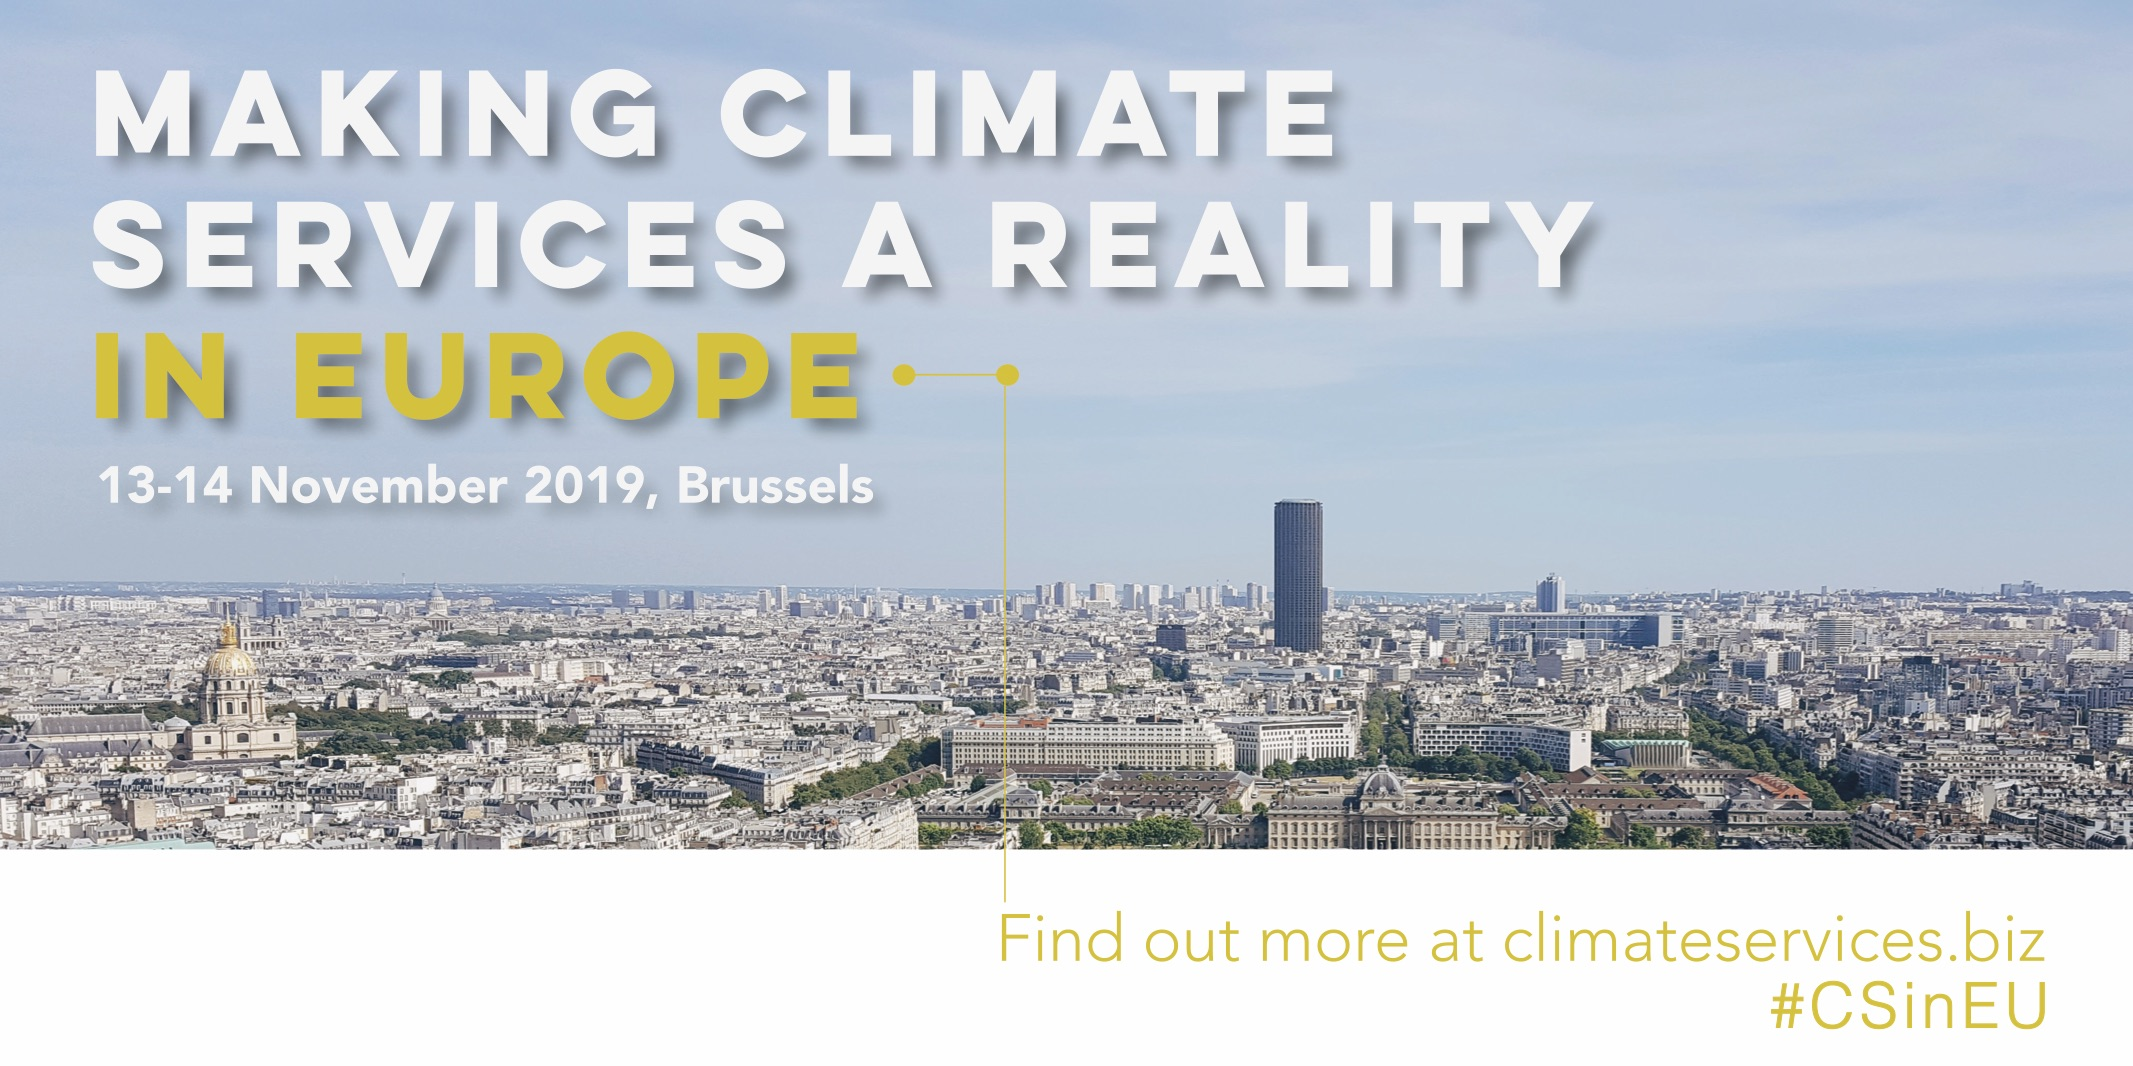 Making climate services a reality in Europe